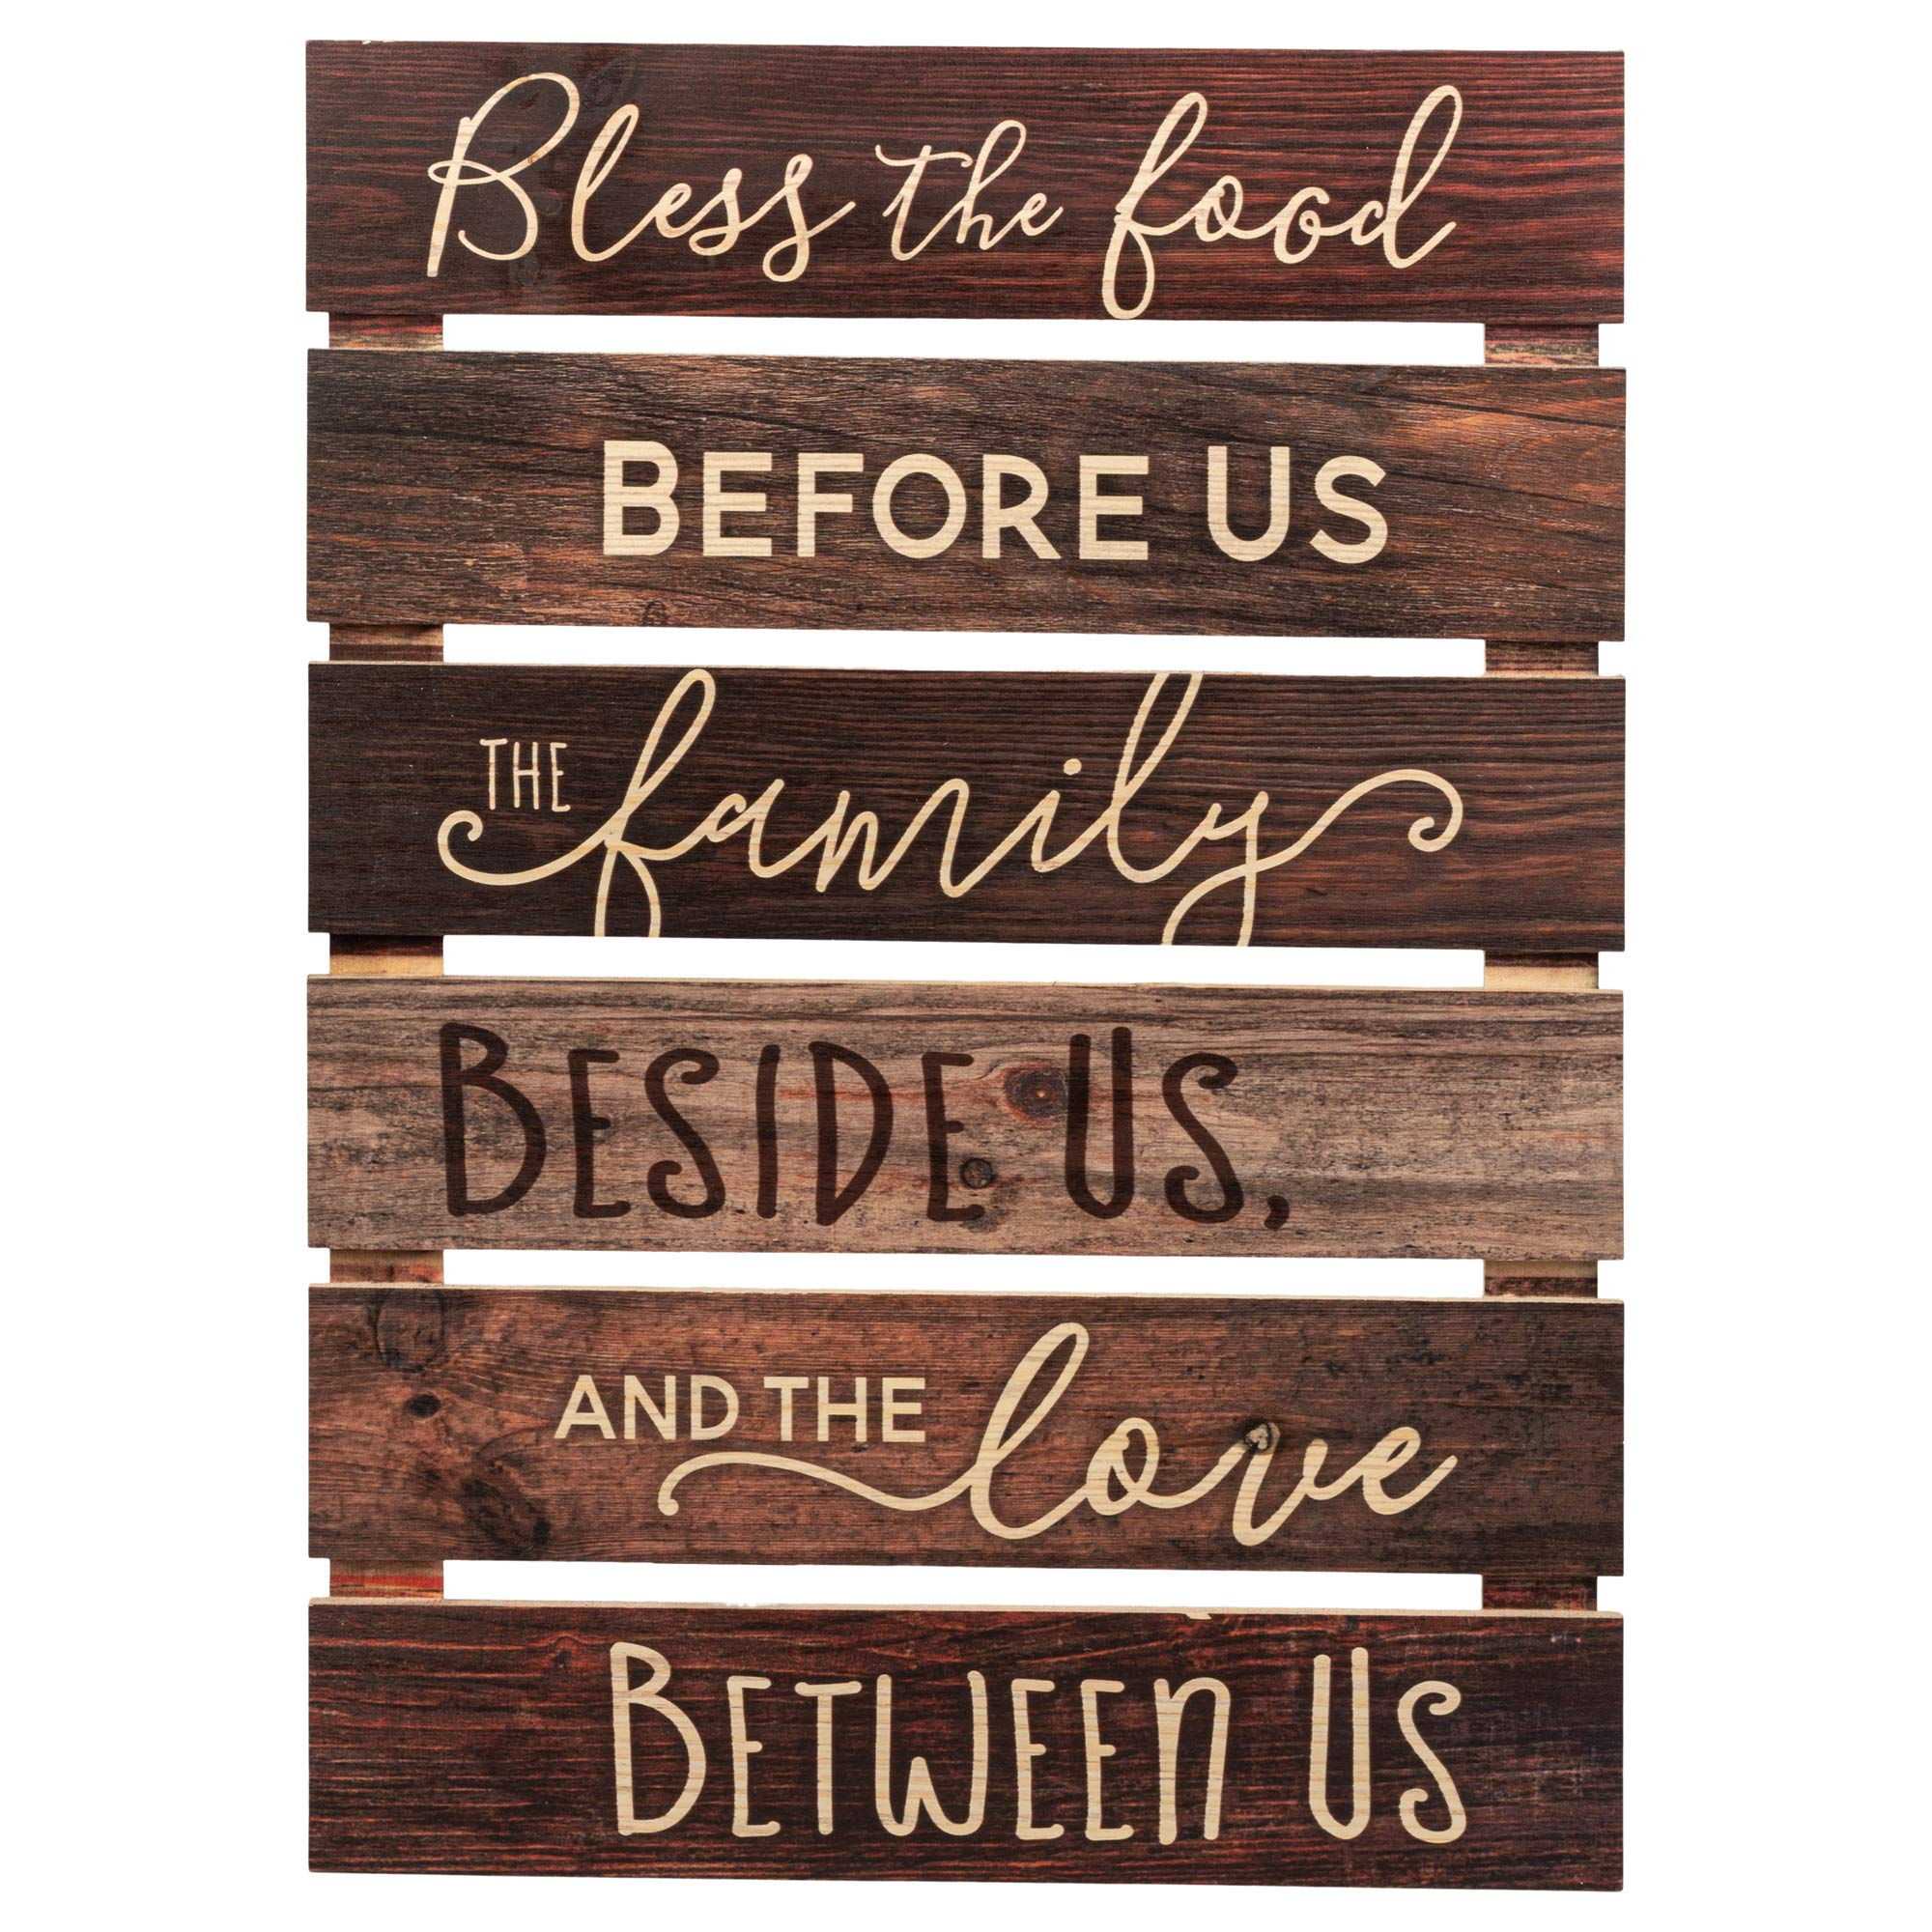 P. Graham Dunn Bless The Food Before Us Brown Distressed 17 x 24 Inch Solid Pine Wood Skid Wall Plaque Sign by P. Graham Dunn